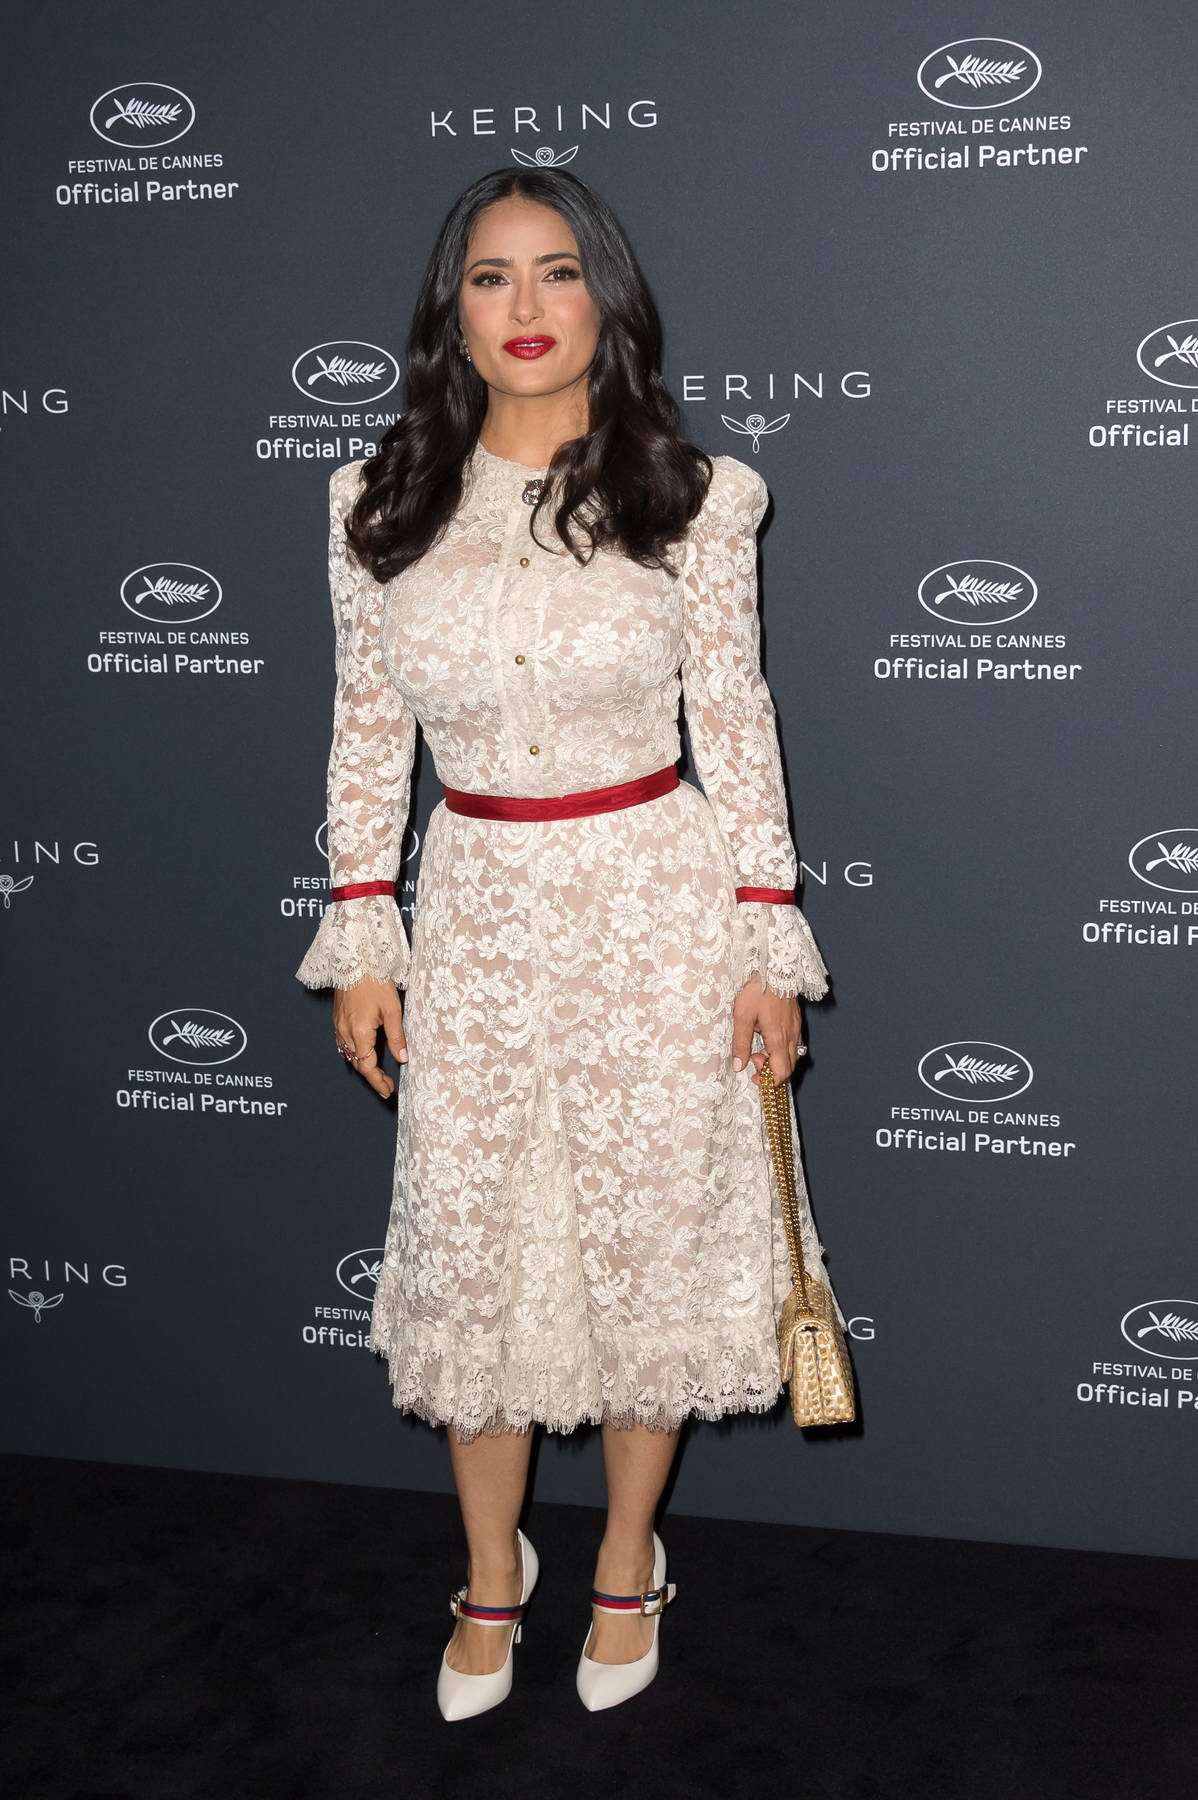 Salma Hayek attends Kering Women in Motion Photocall during 71st Cannes Film Festival in Cannes, France